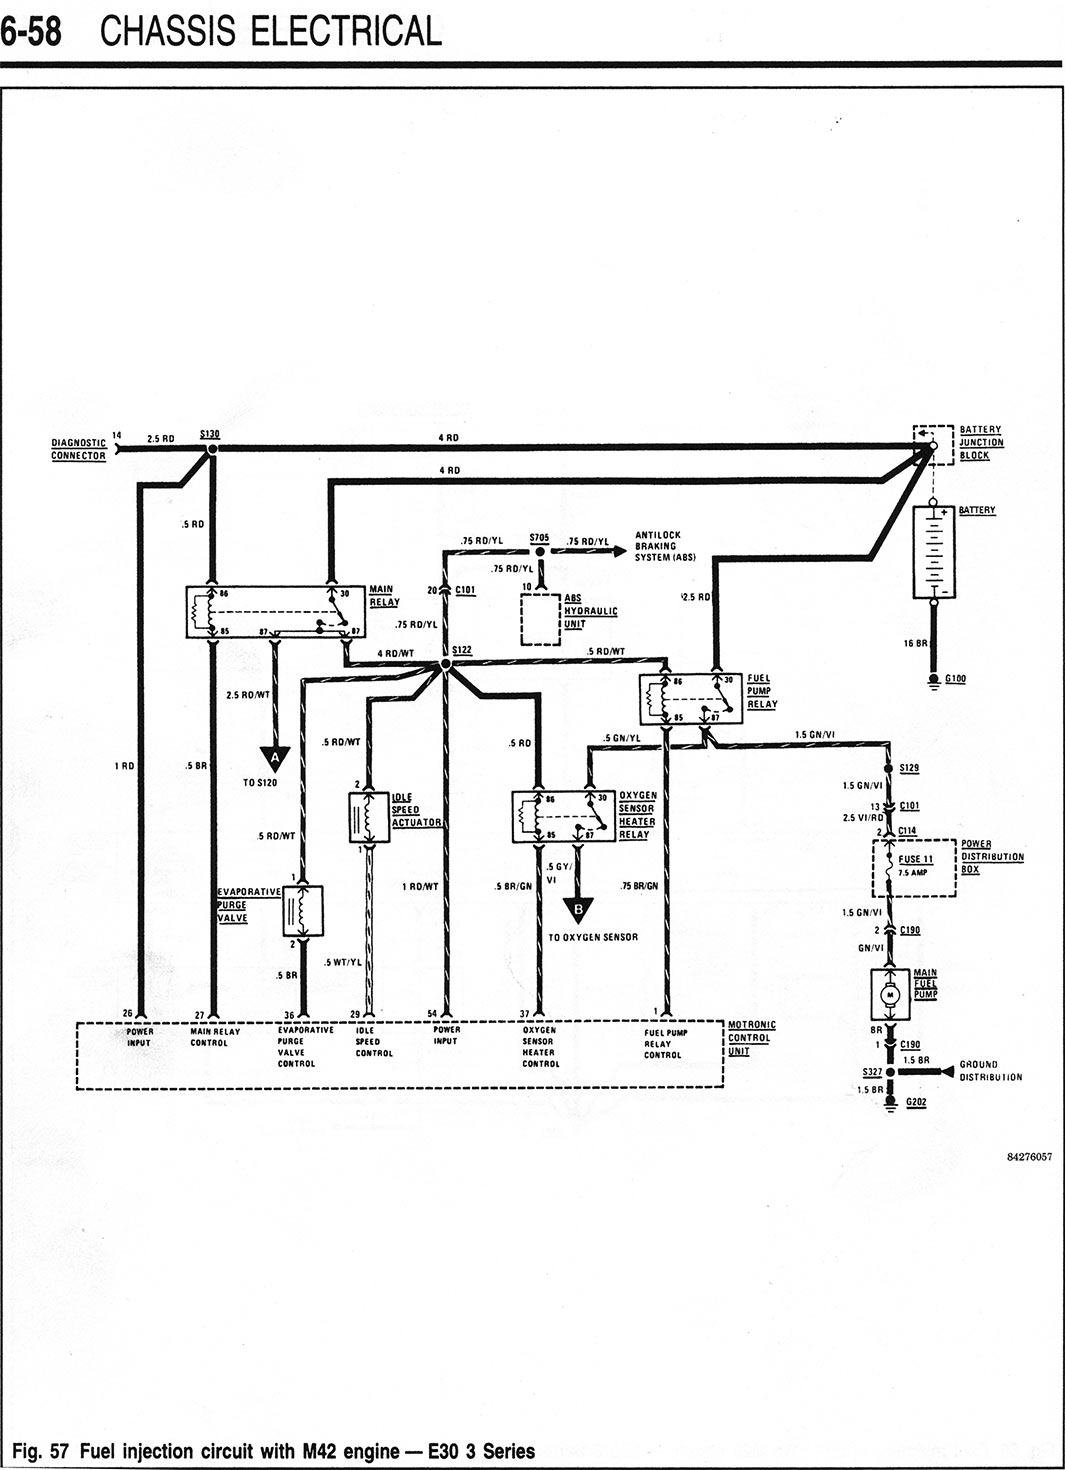 PG658 m42 starter fuel injection wiring diagrams e30 wiring harness diagram at nearapp.co